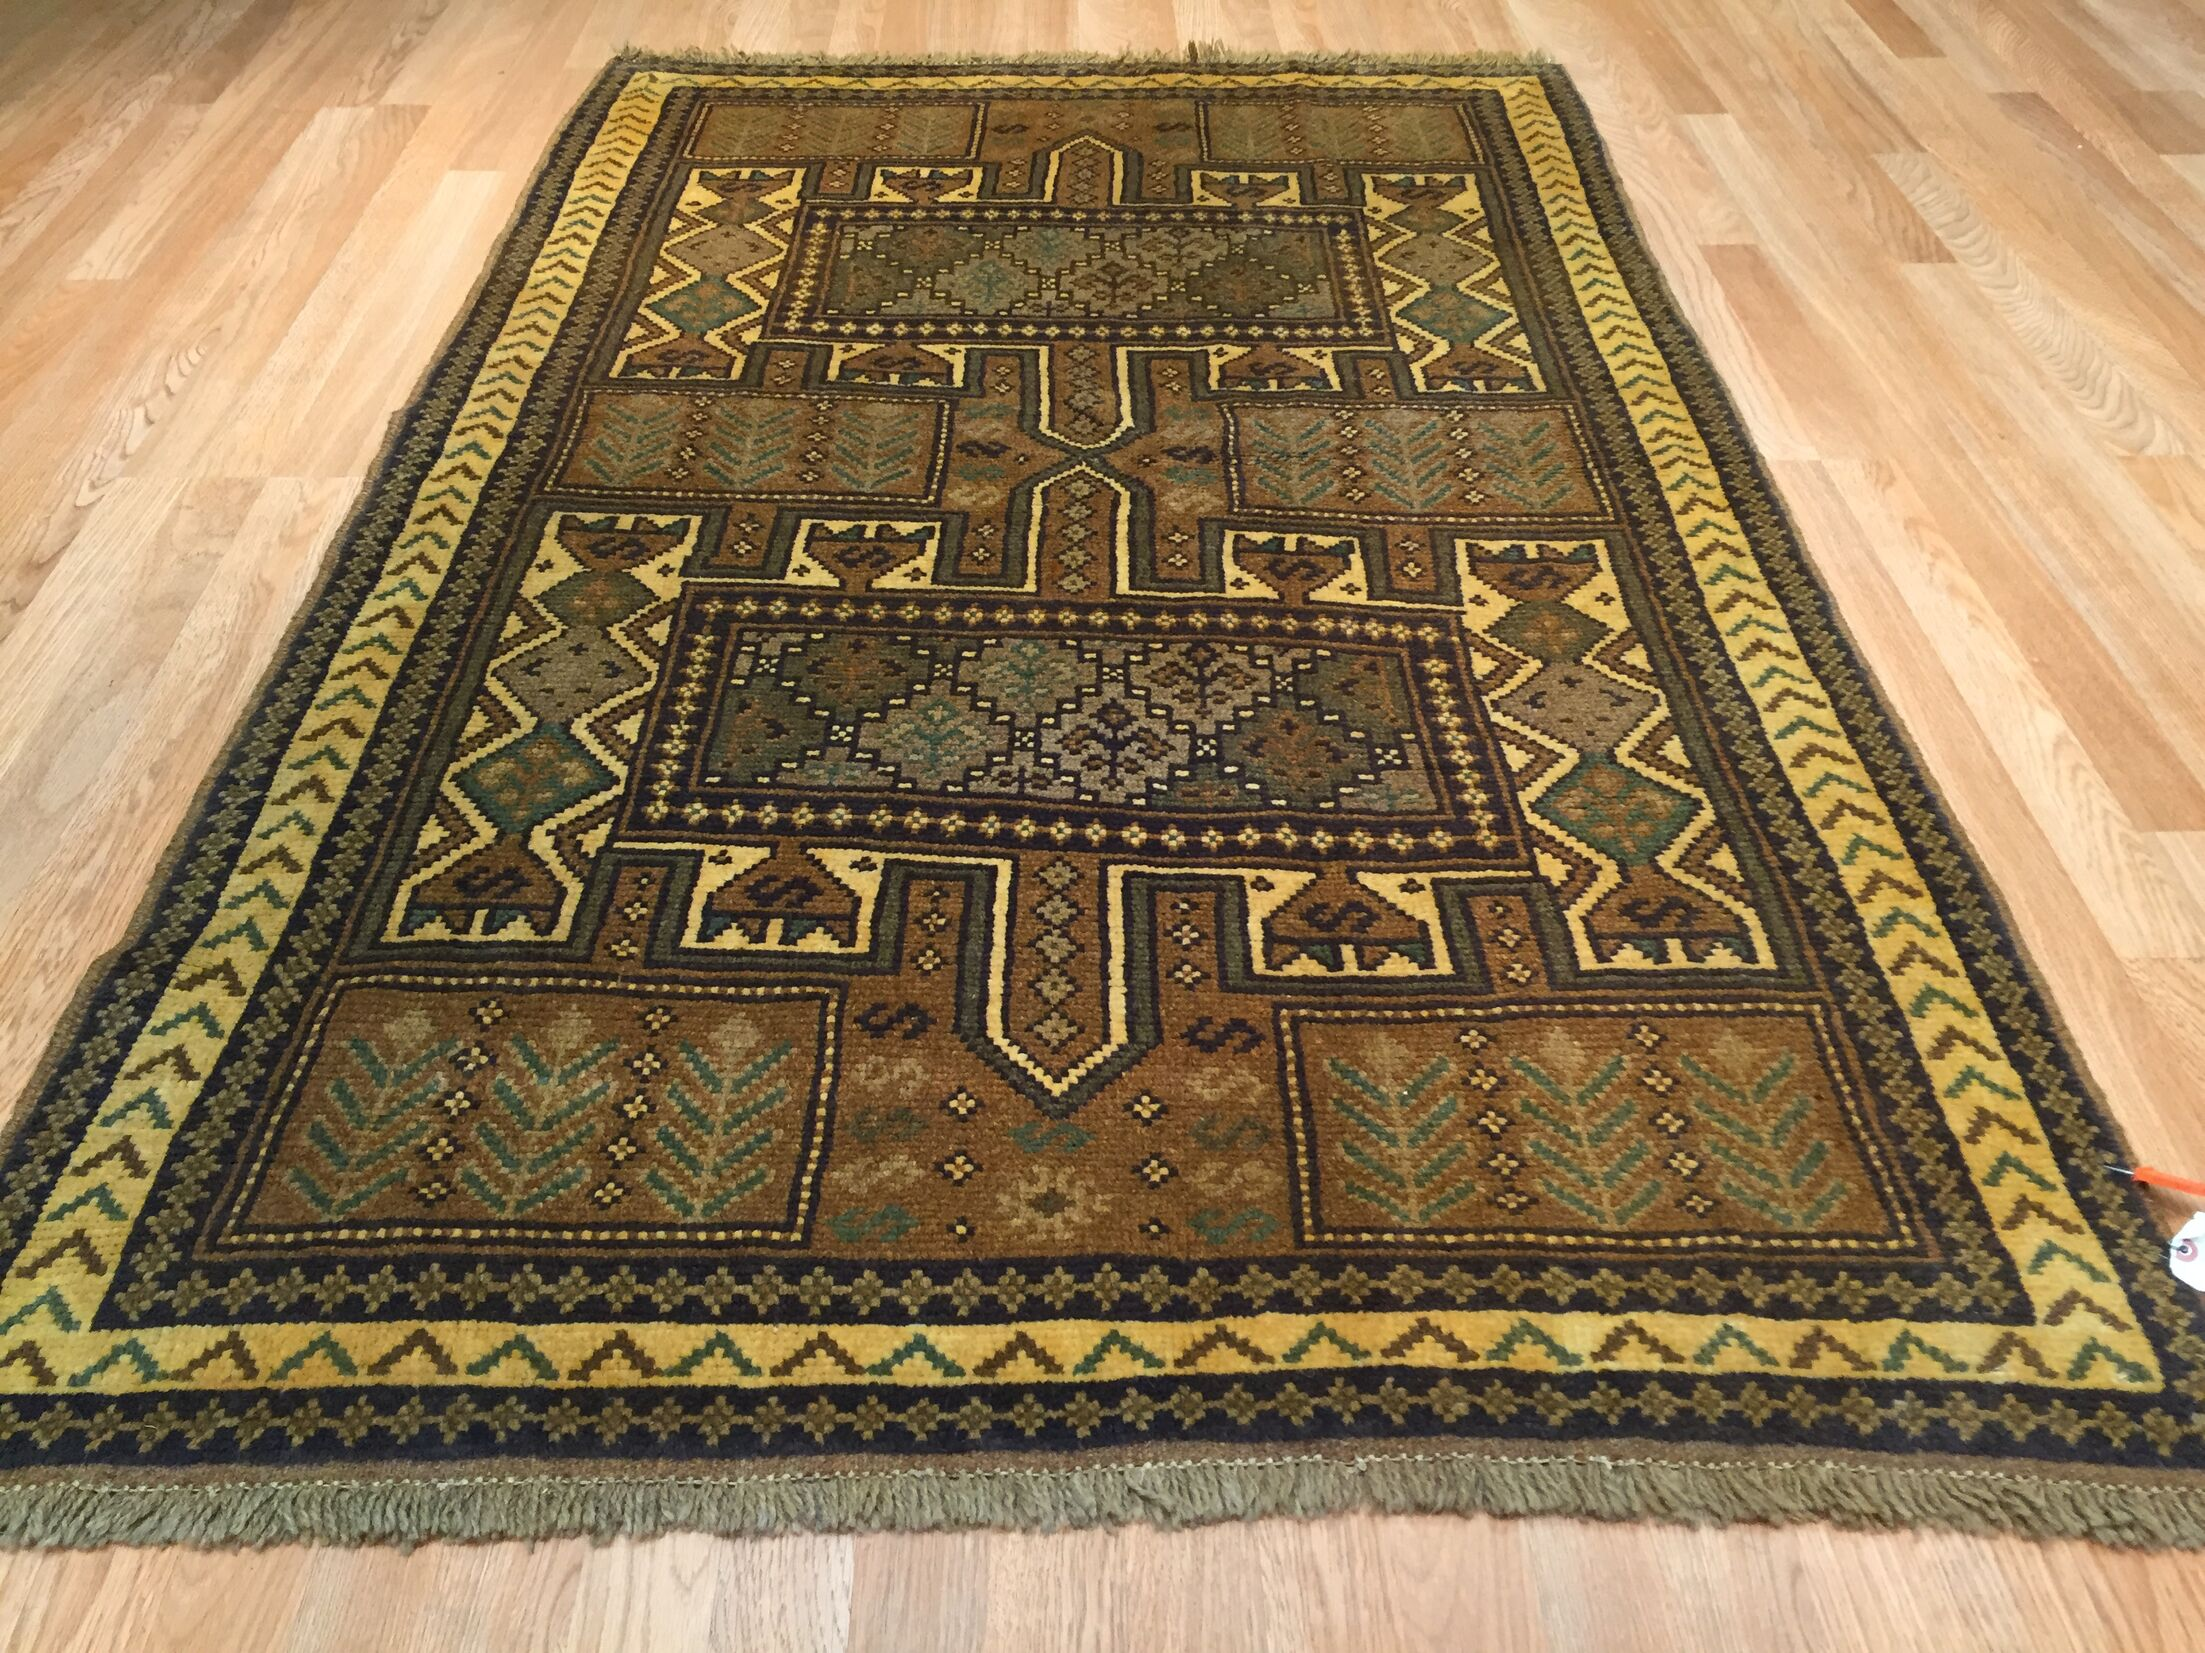 Shiraz Tribal Hand-Knotted Brown/Green Area Rug